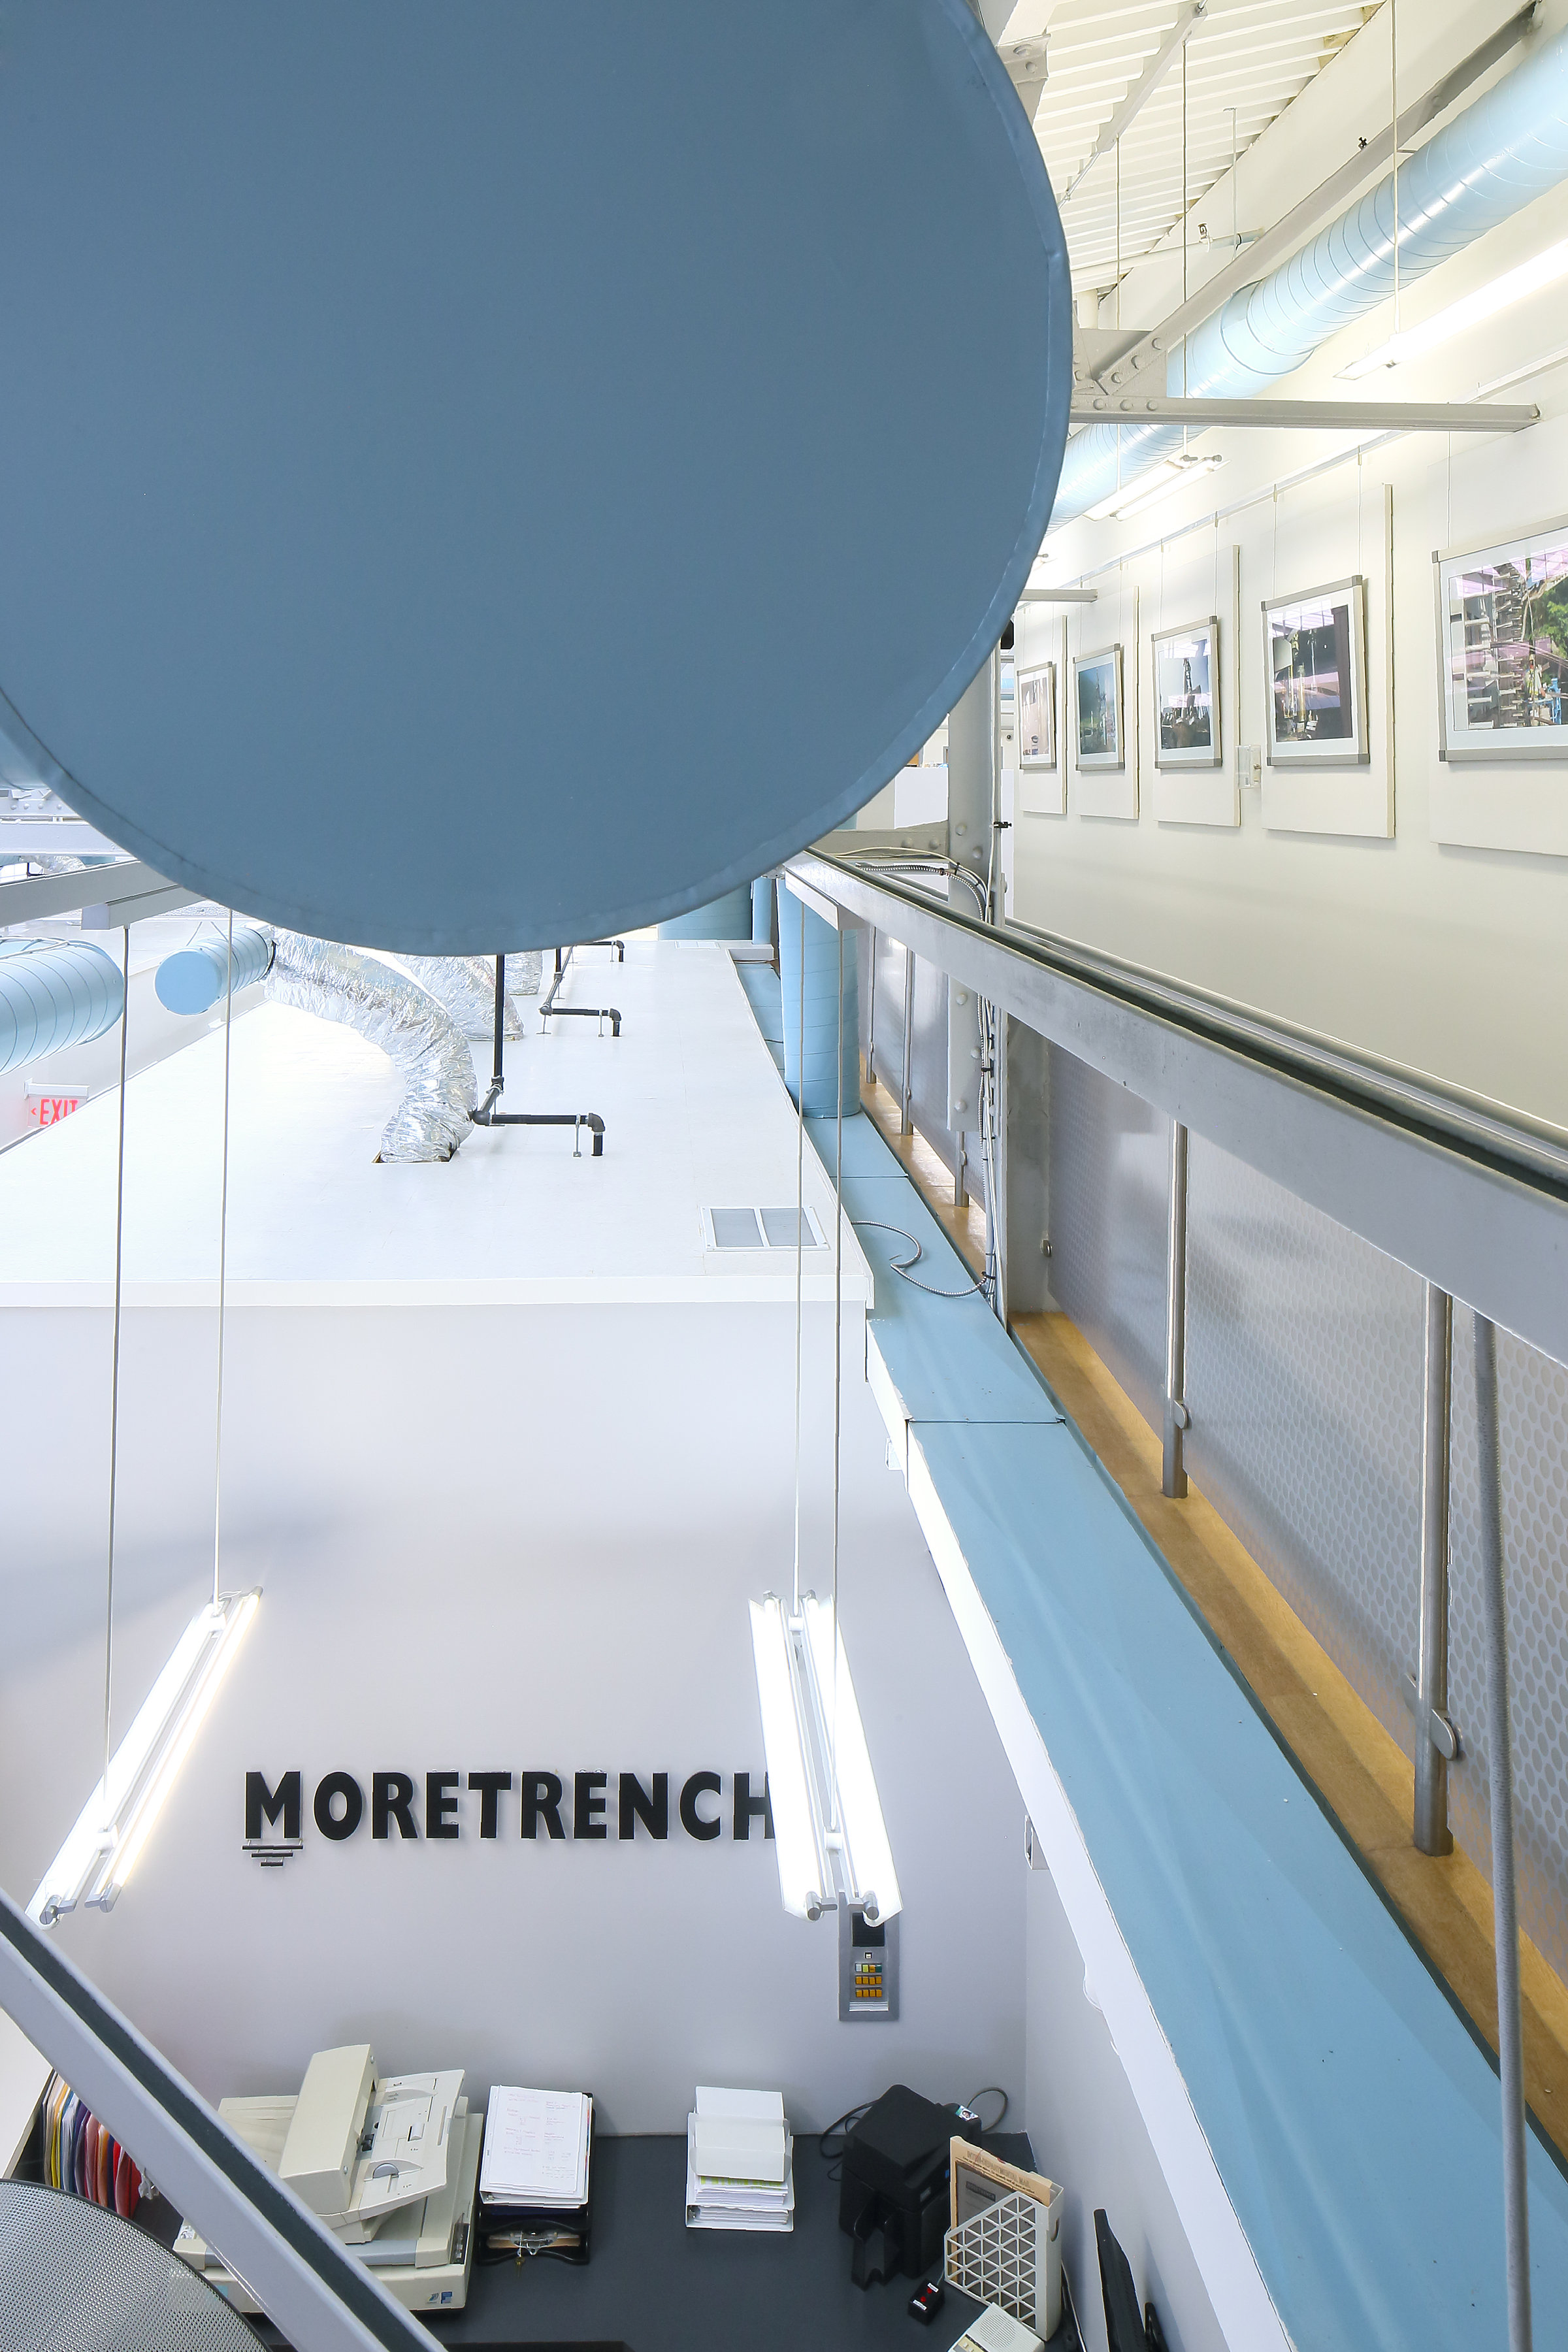 35-Moretrench_252